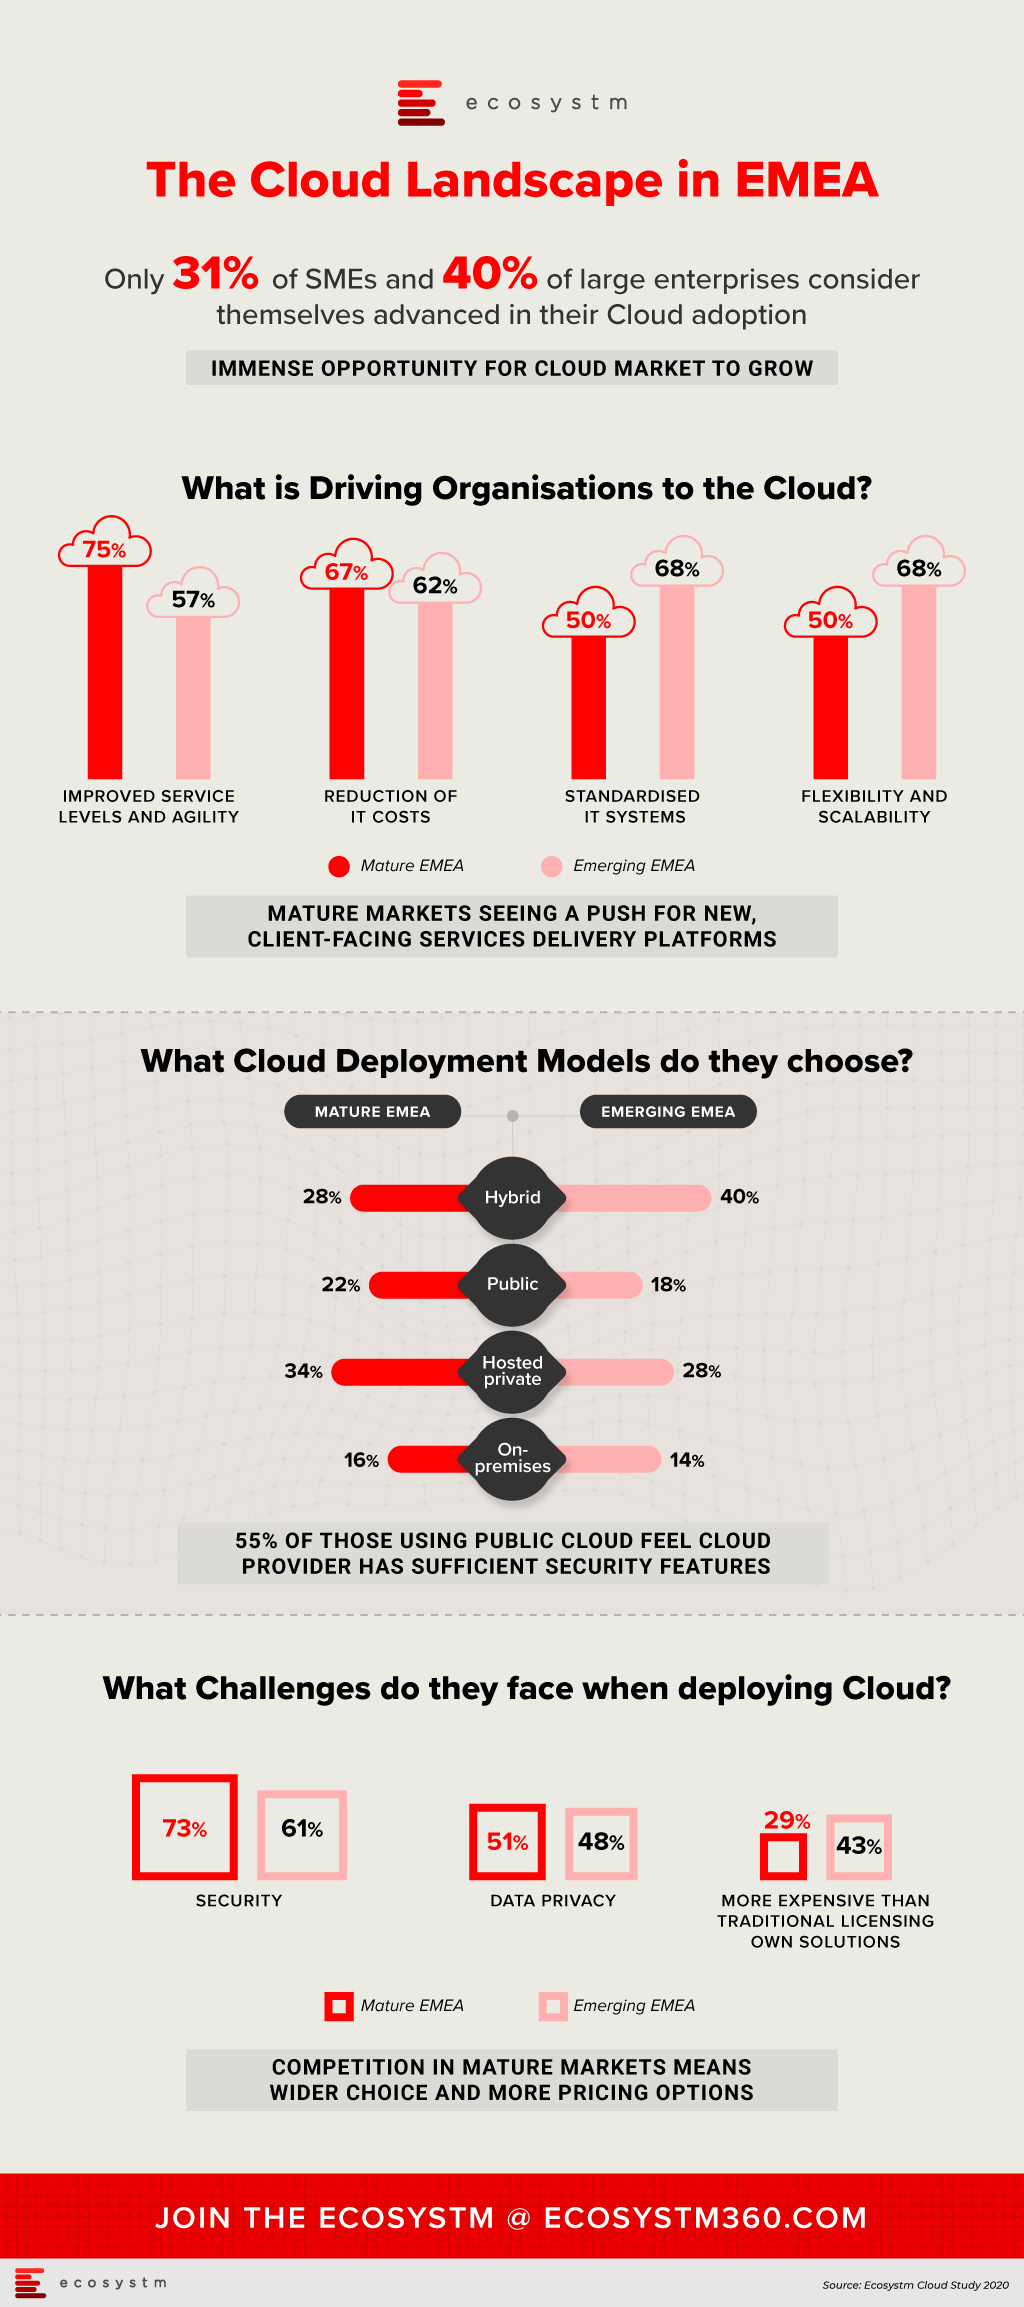 The Cloud Landscape in EMEA